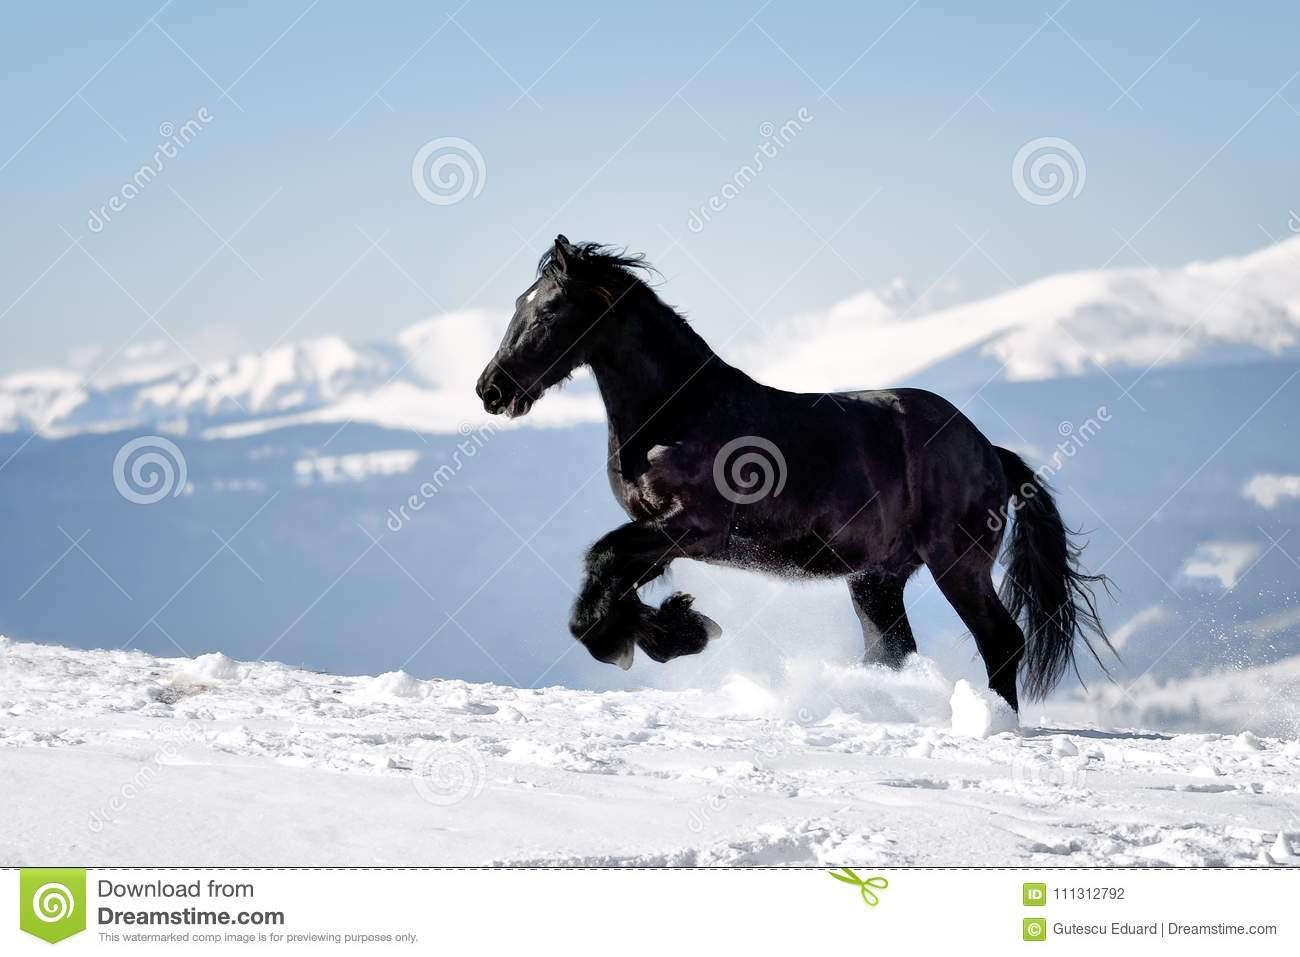 Black Horse in the winter time with mountains in the background